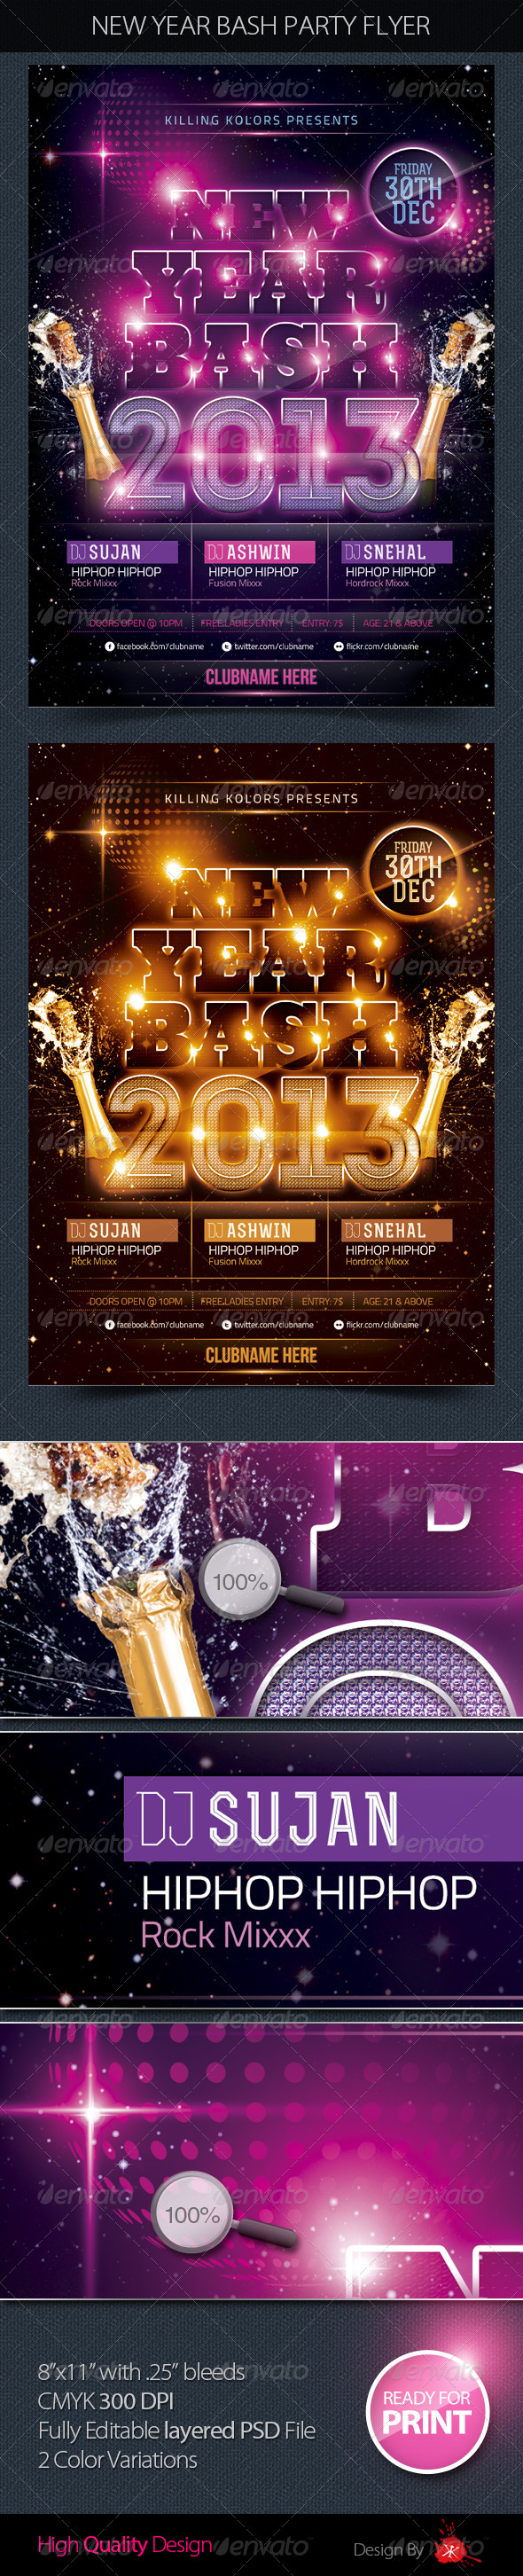 GraphicRiver New Year Bash Party Flyer 3641416